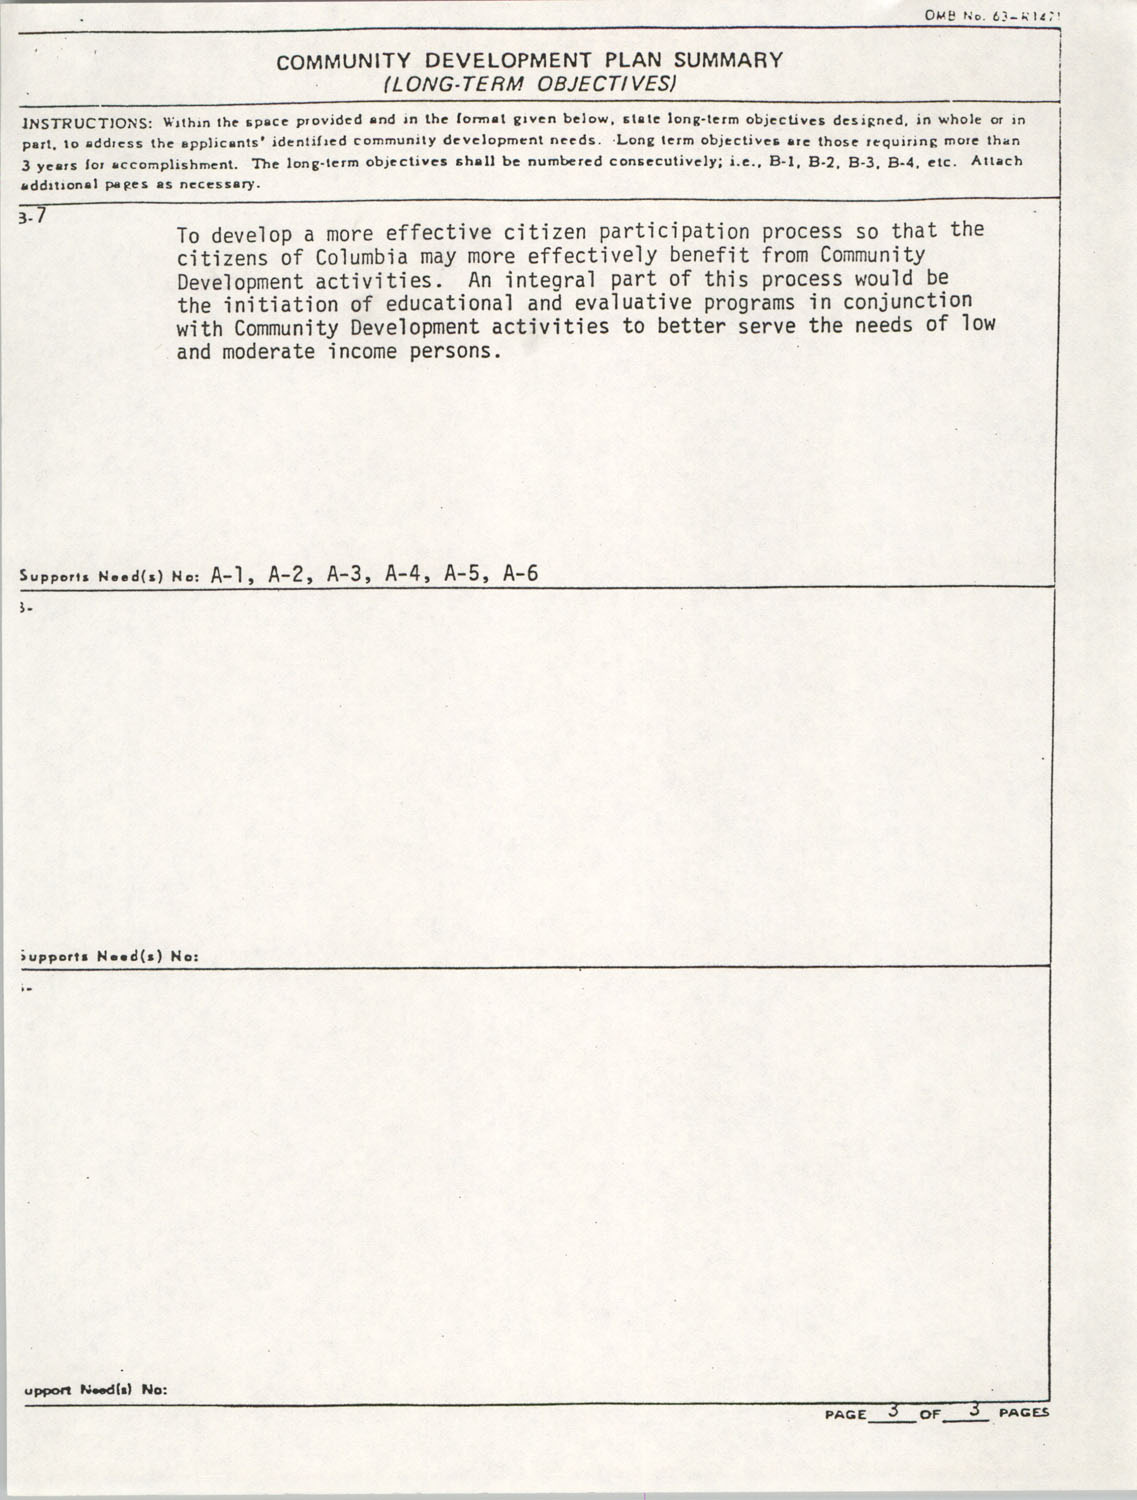 Community Development Act Columbia, South Carolina Materials, South Carolina,  Page 7